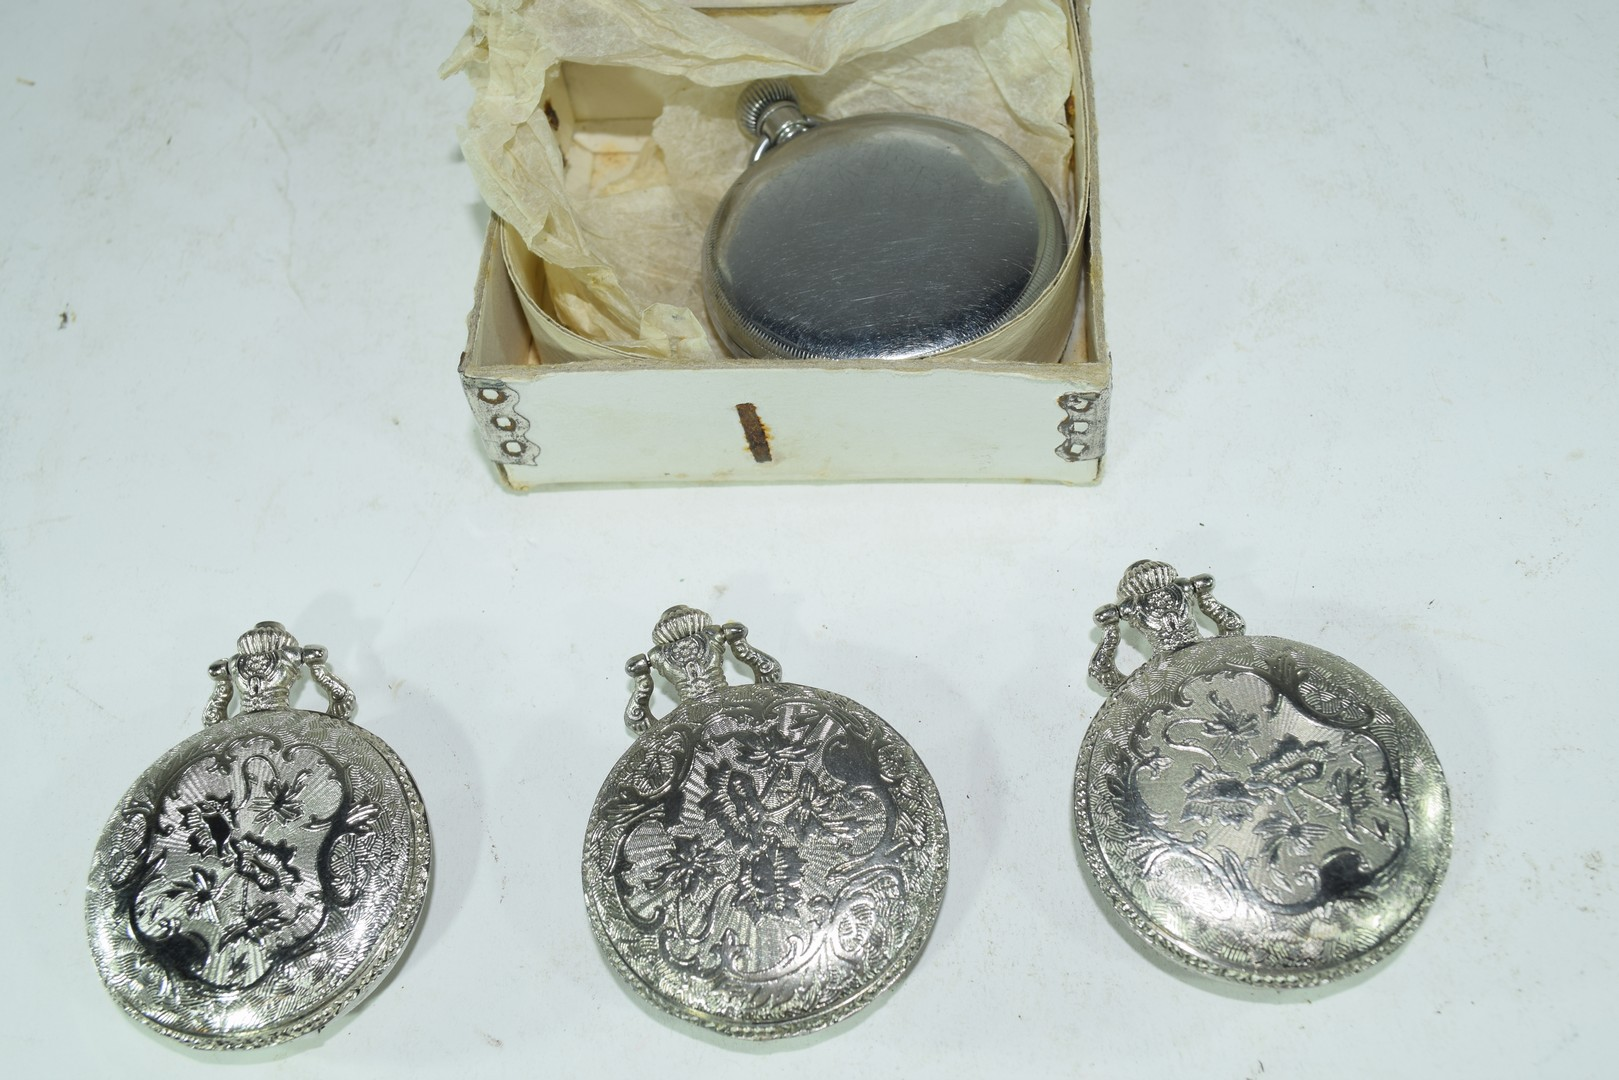 Cays screwback lever pocket watch - Image 3 of 4